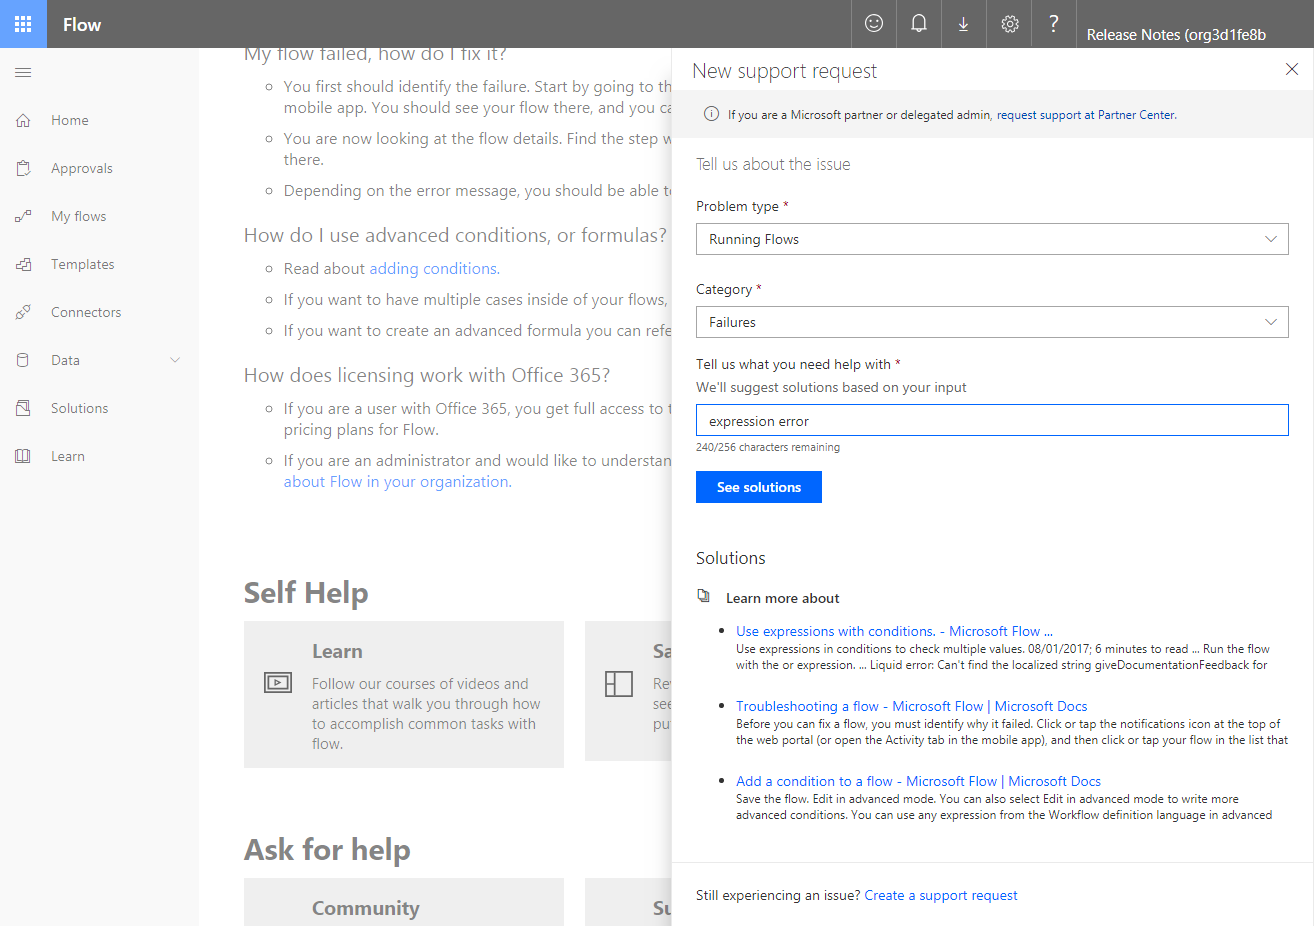 Integrated help and support experience in Microsoft Flow